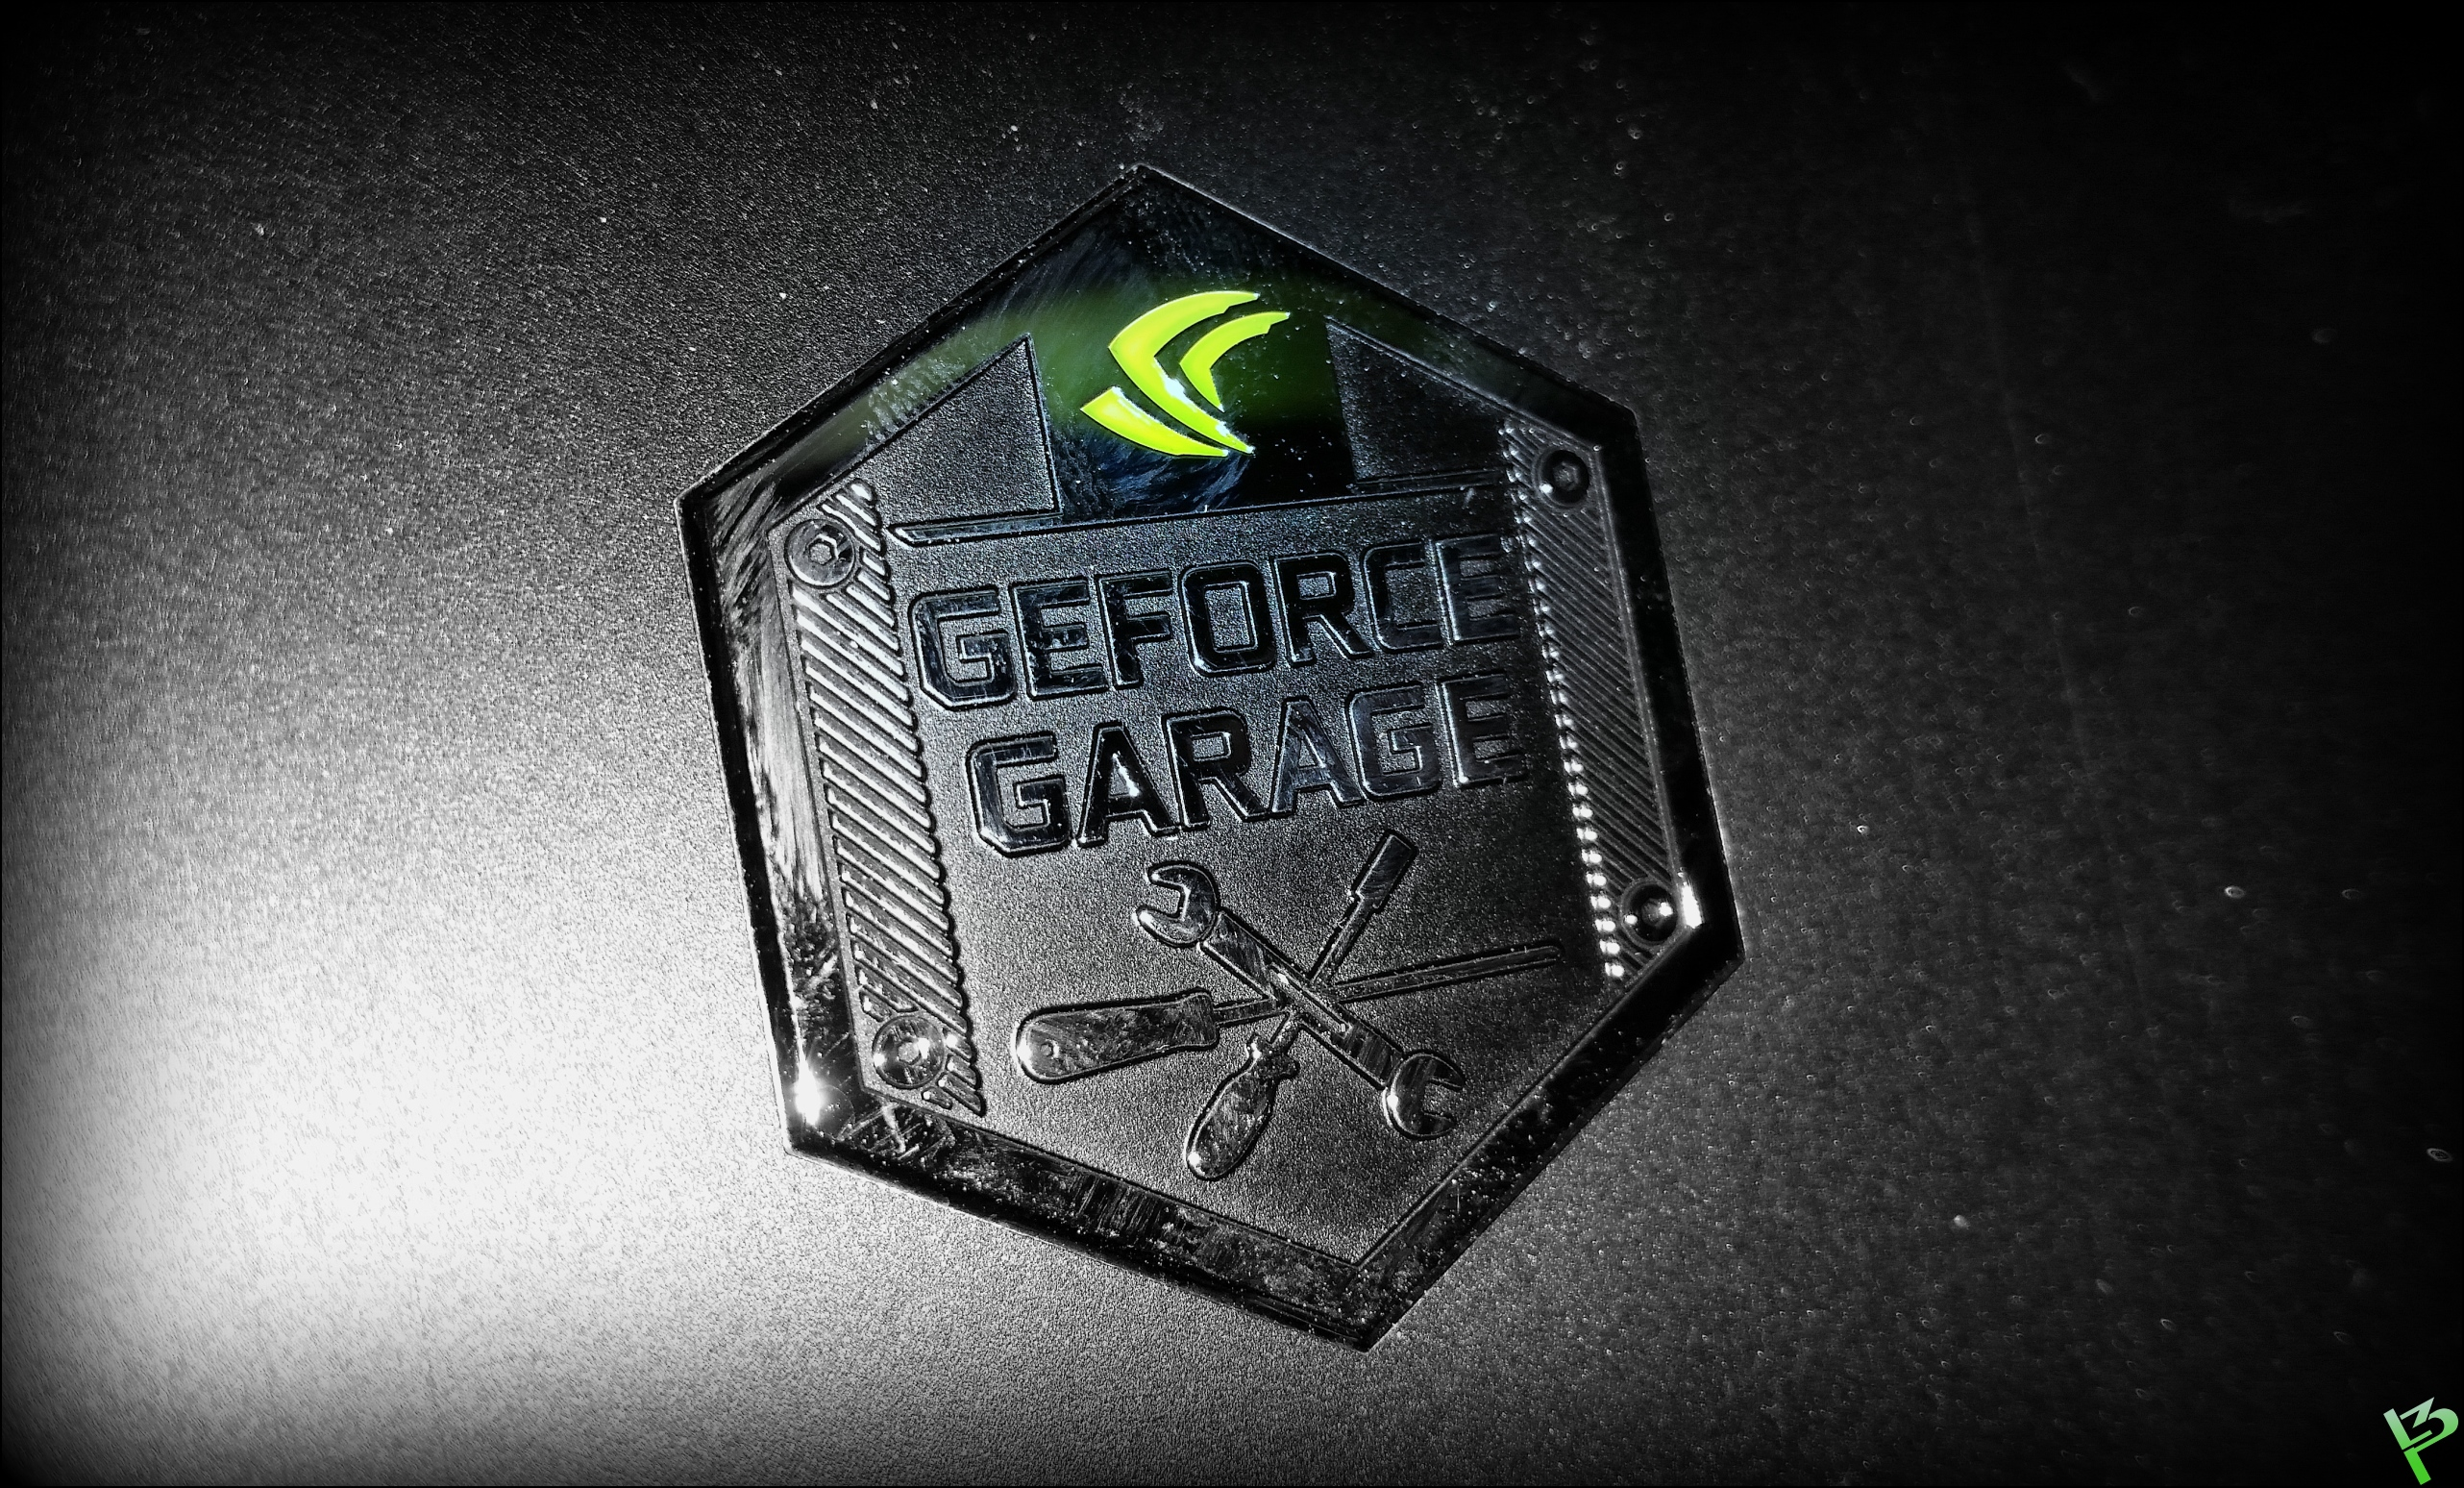 nvidia turkey 900d l3p not to forget the geforce garage badge